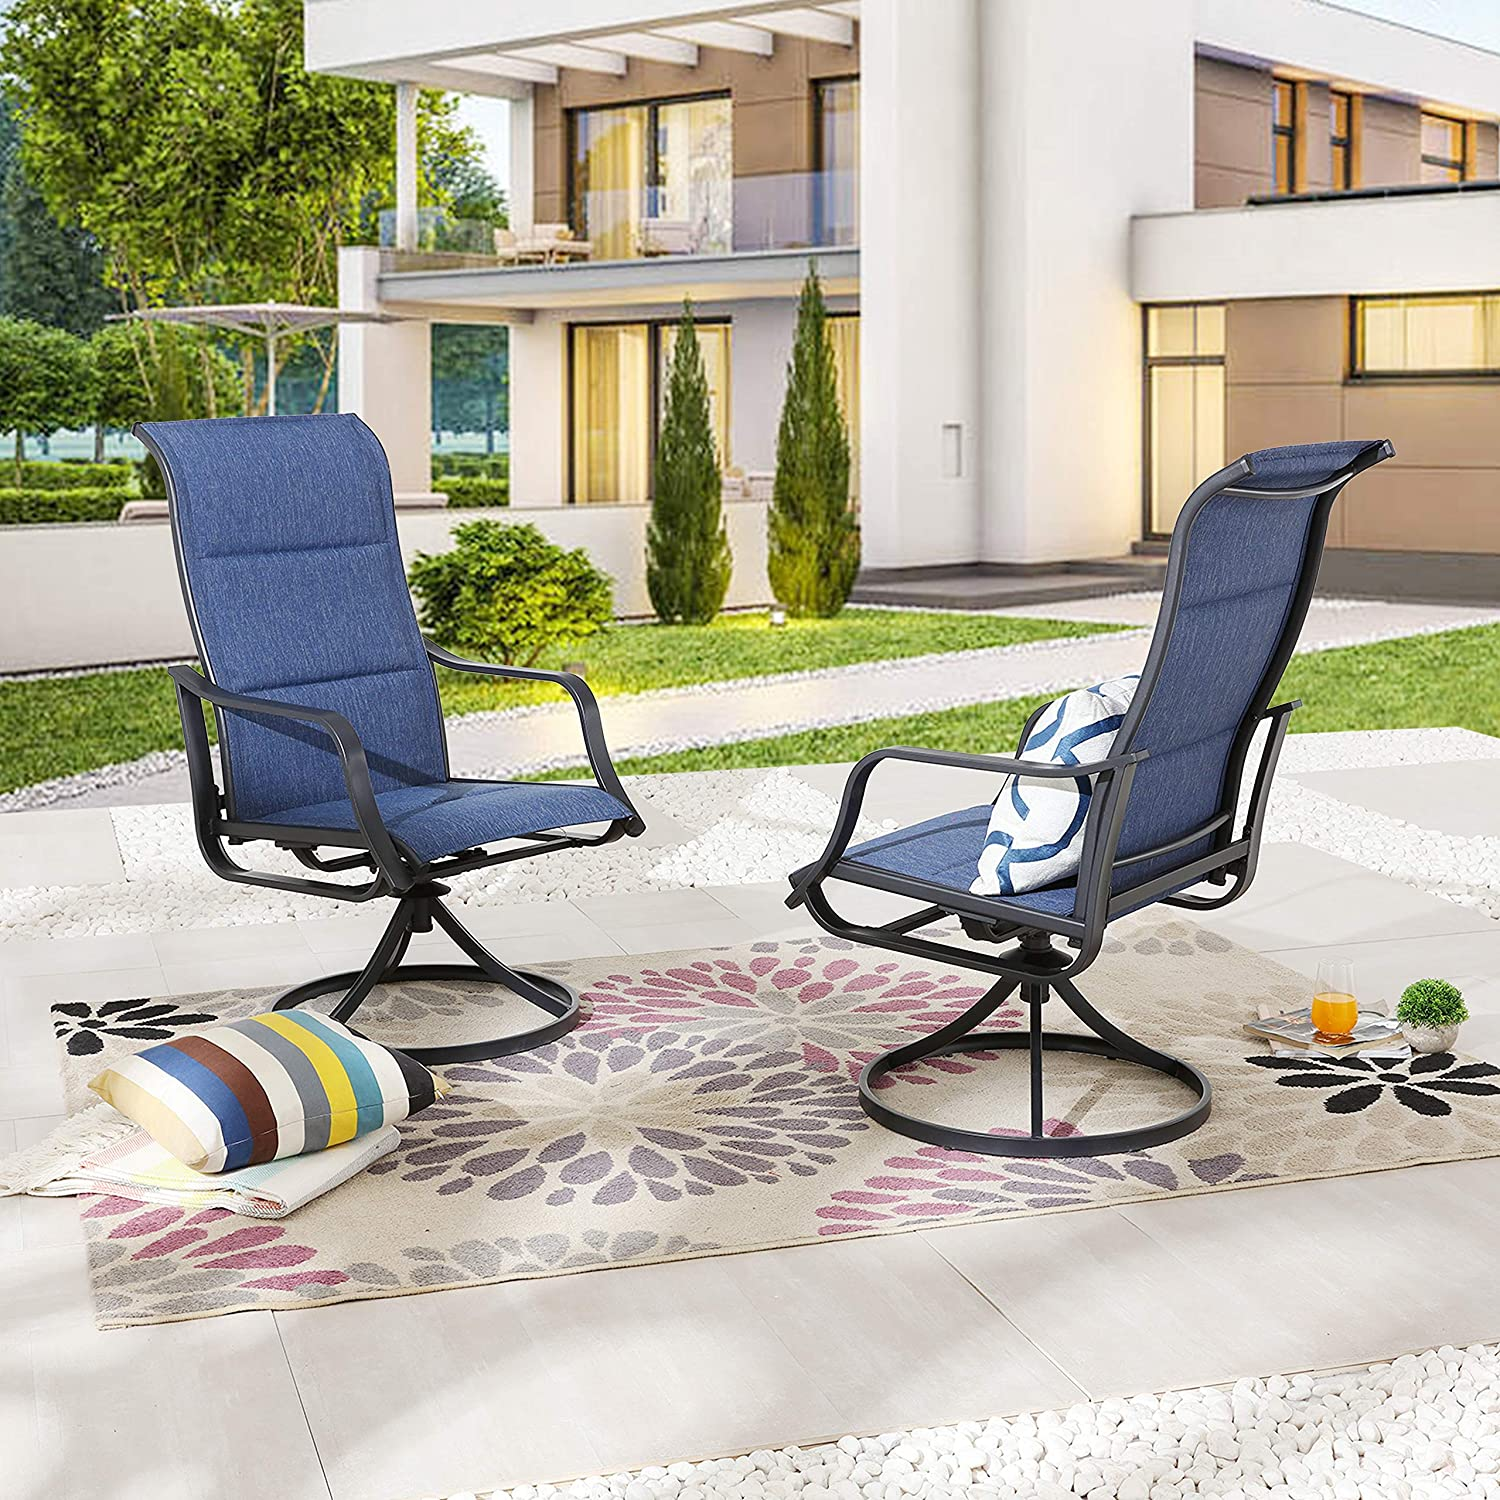 LOKATSE HOME Patio Dining Swivel Set of 2 Outdoor Textilene Fabric Chair with Metal Frame, Blue